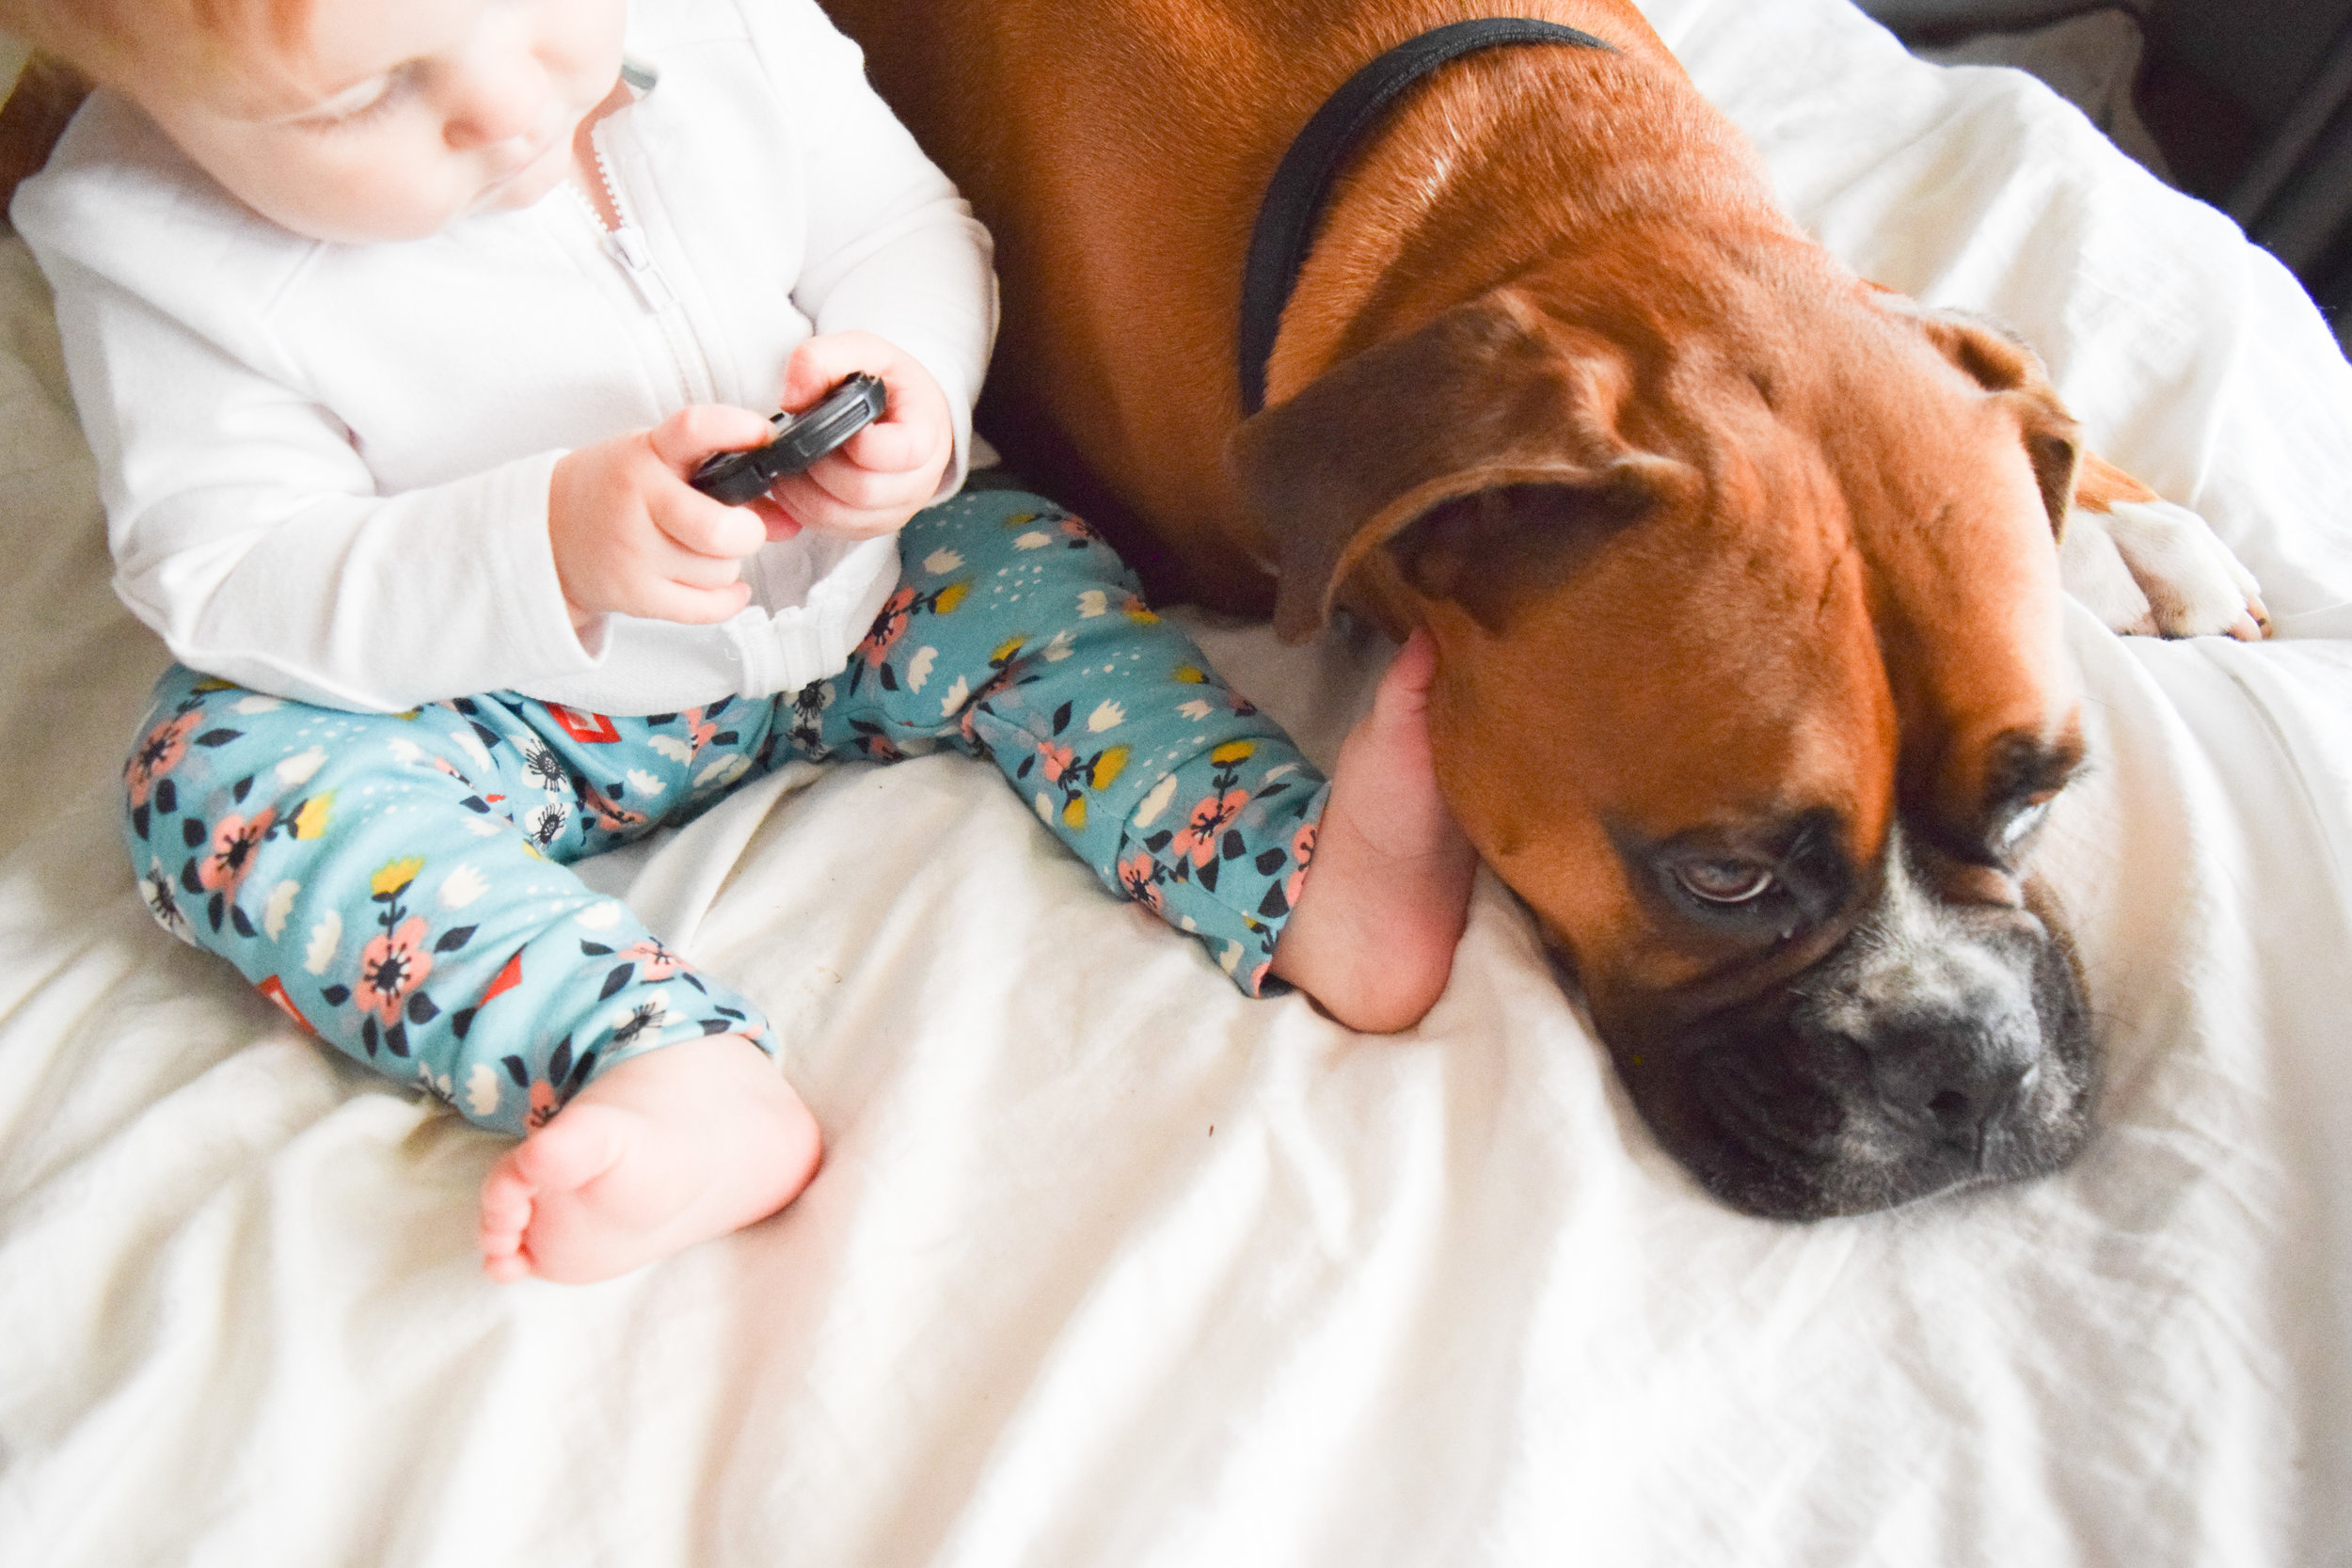 Teal Baby Floral Leggings - Baby + Boxer Puppy Photos